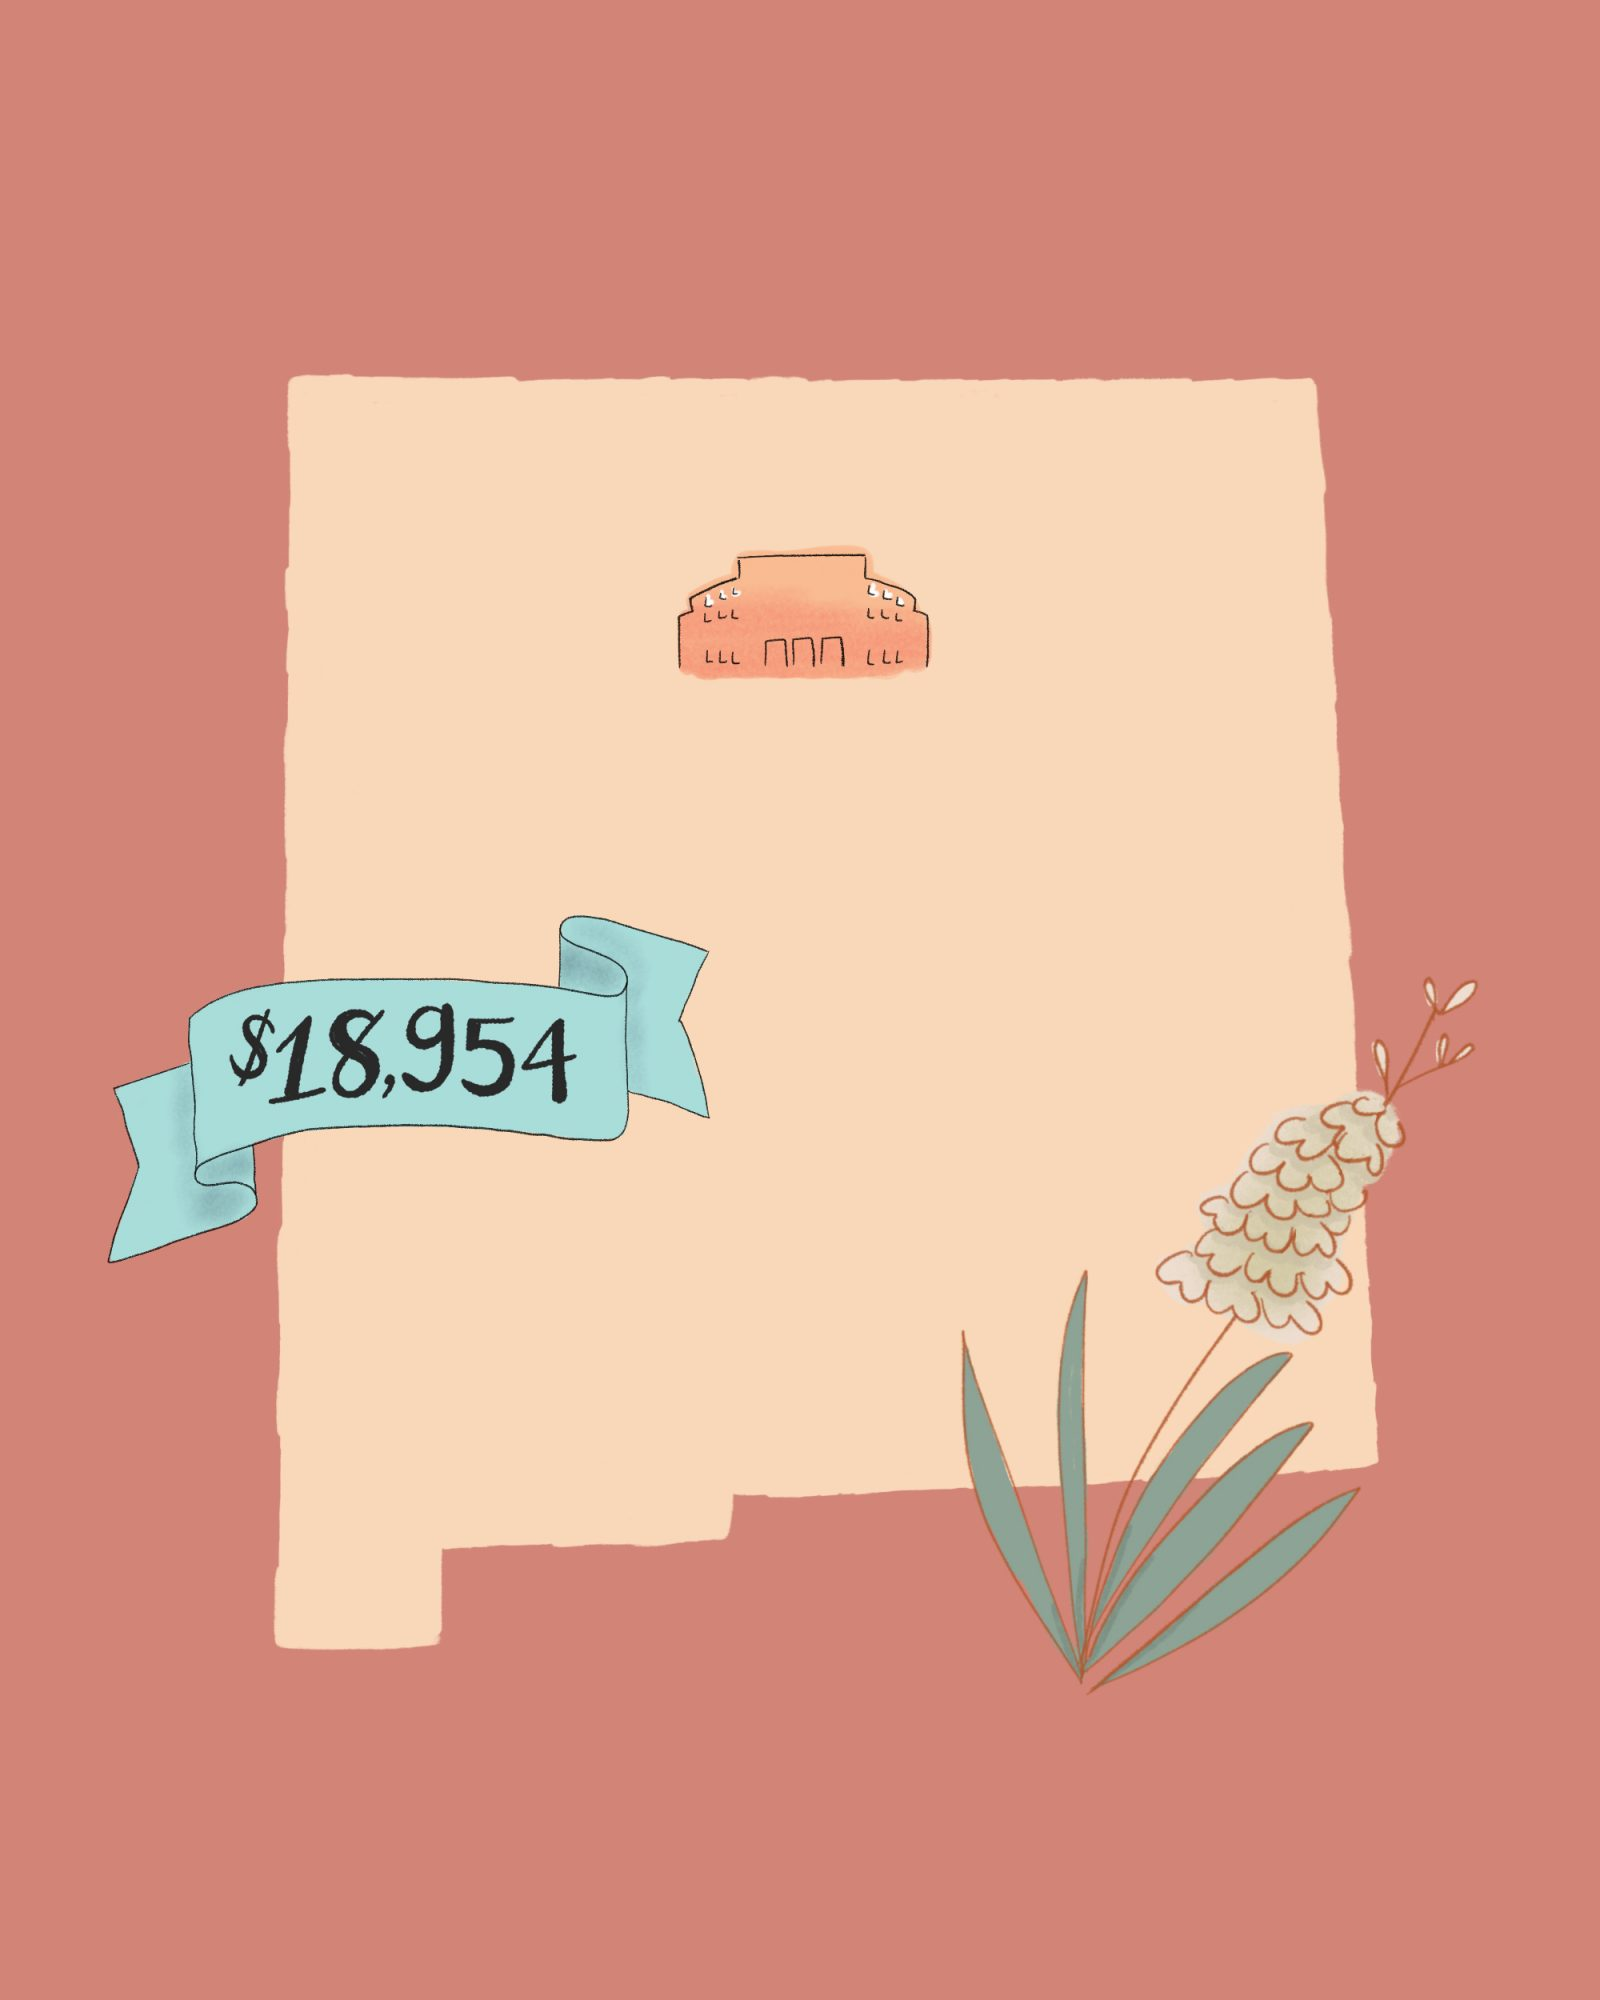 state wedding costs illustration new mexico